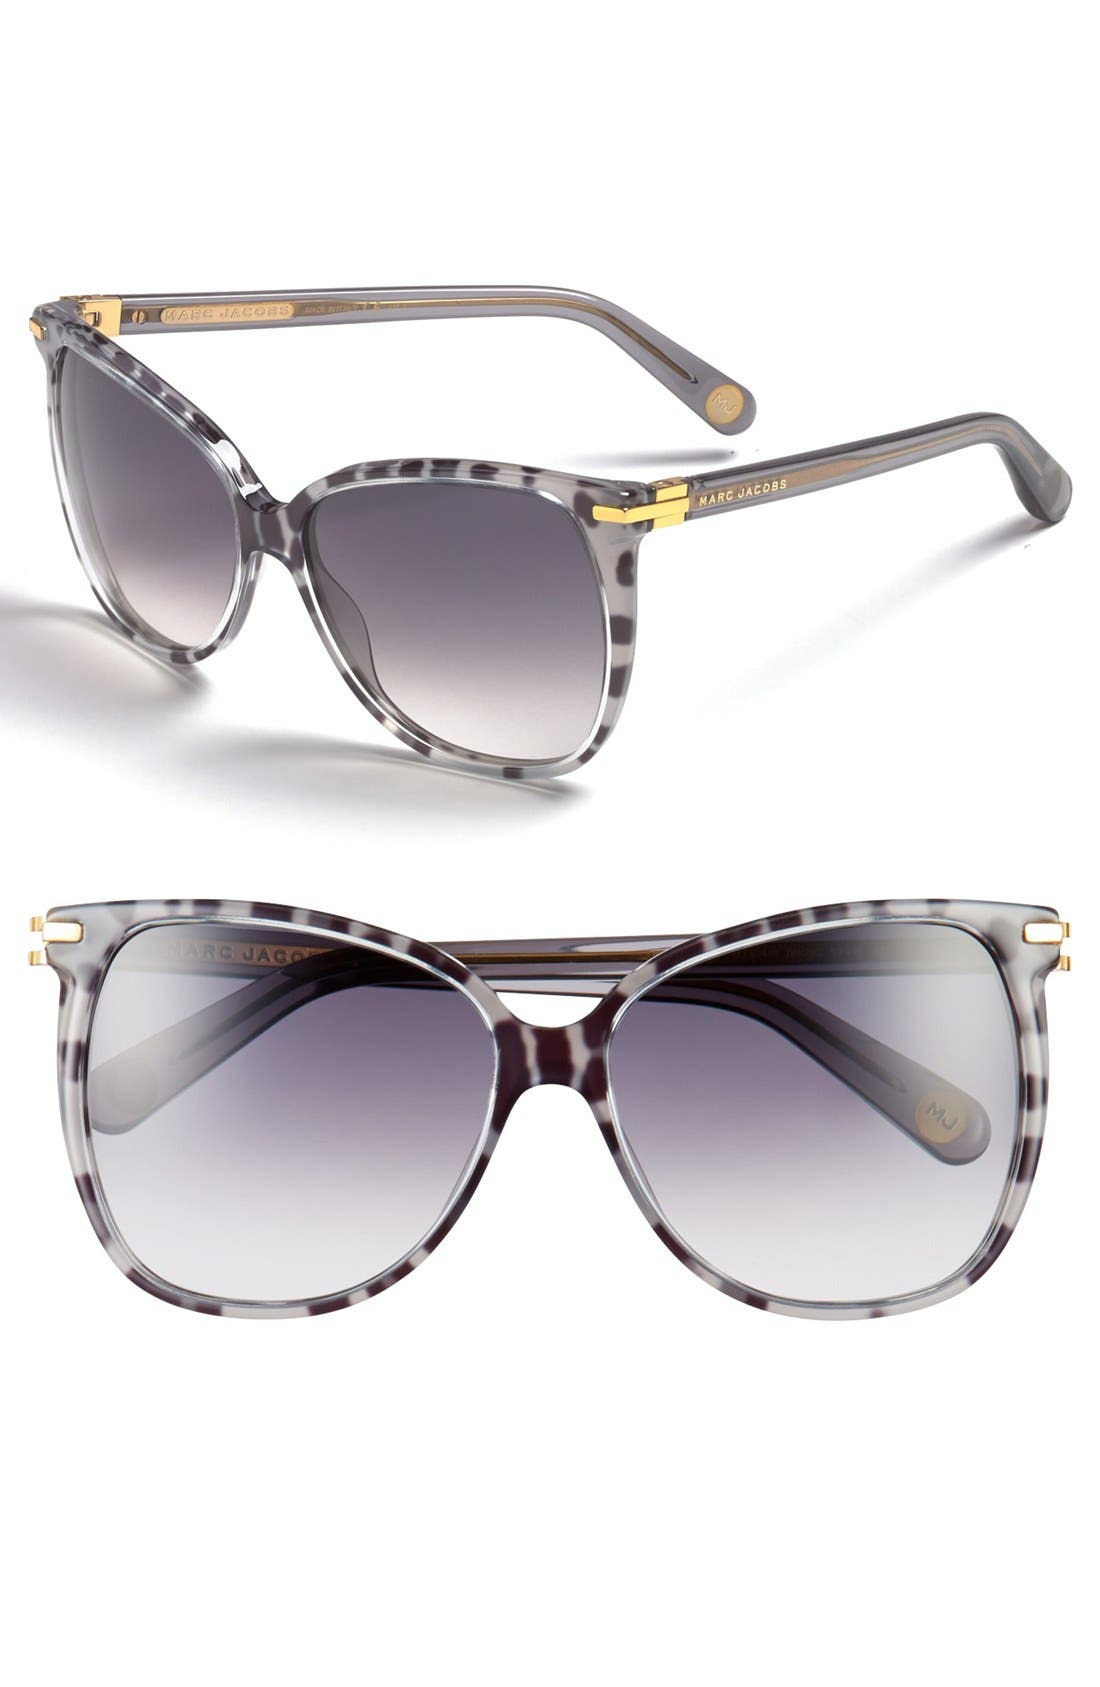 Alternate Image 1 Selected - MARC JACOBS 59mm Sunglasses